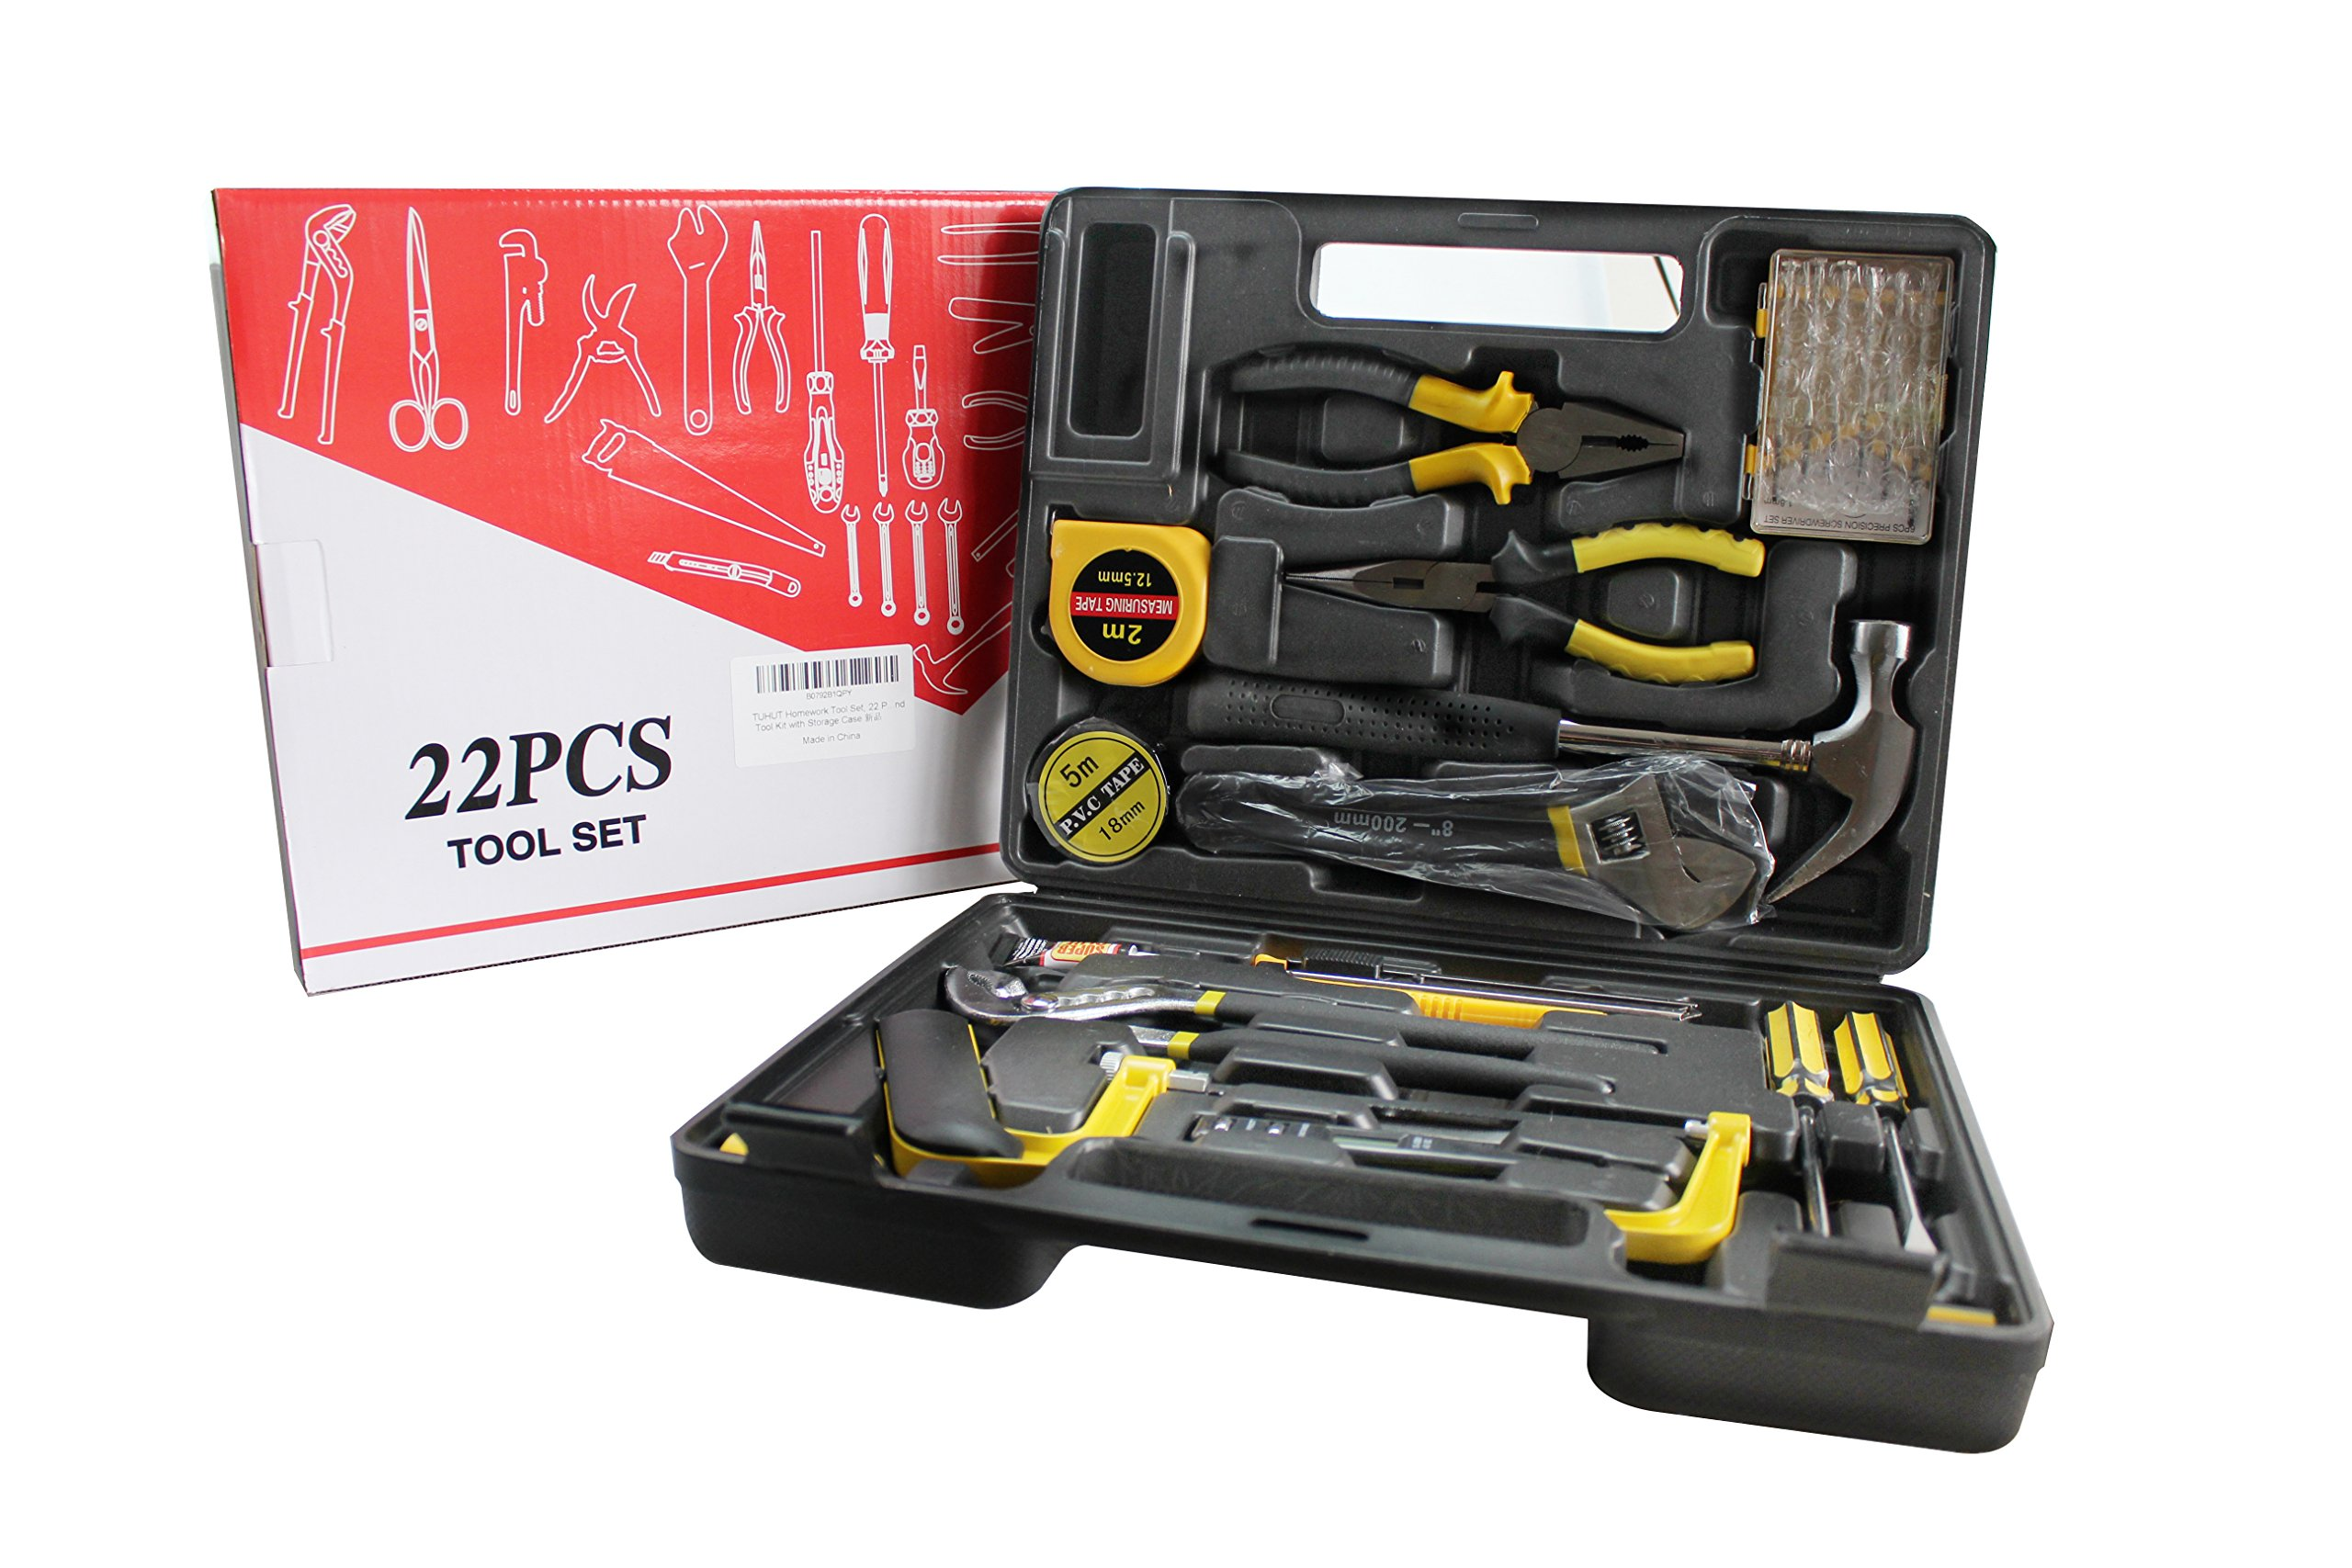 TUHUT Homework Tool Set, 22 Pieces General Household Small Hand Tool Kit with Storage Case